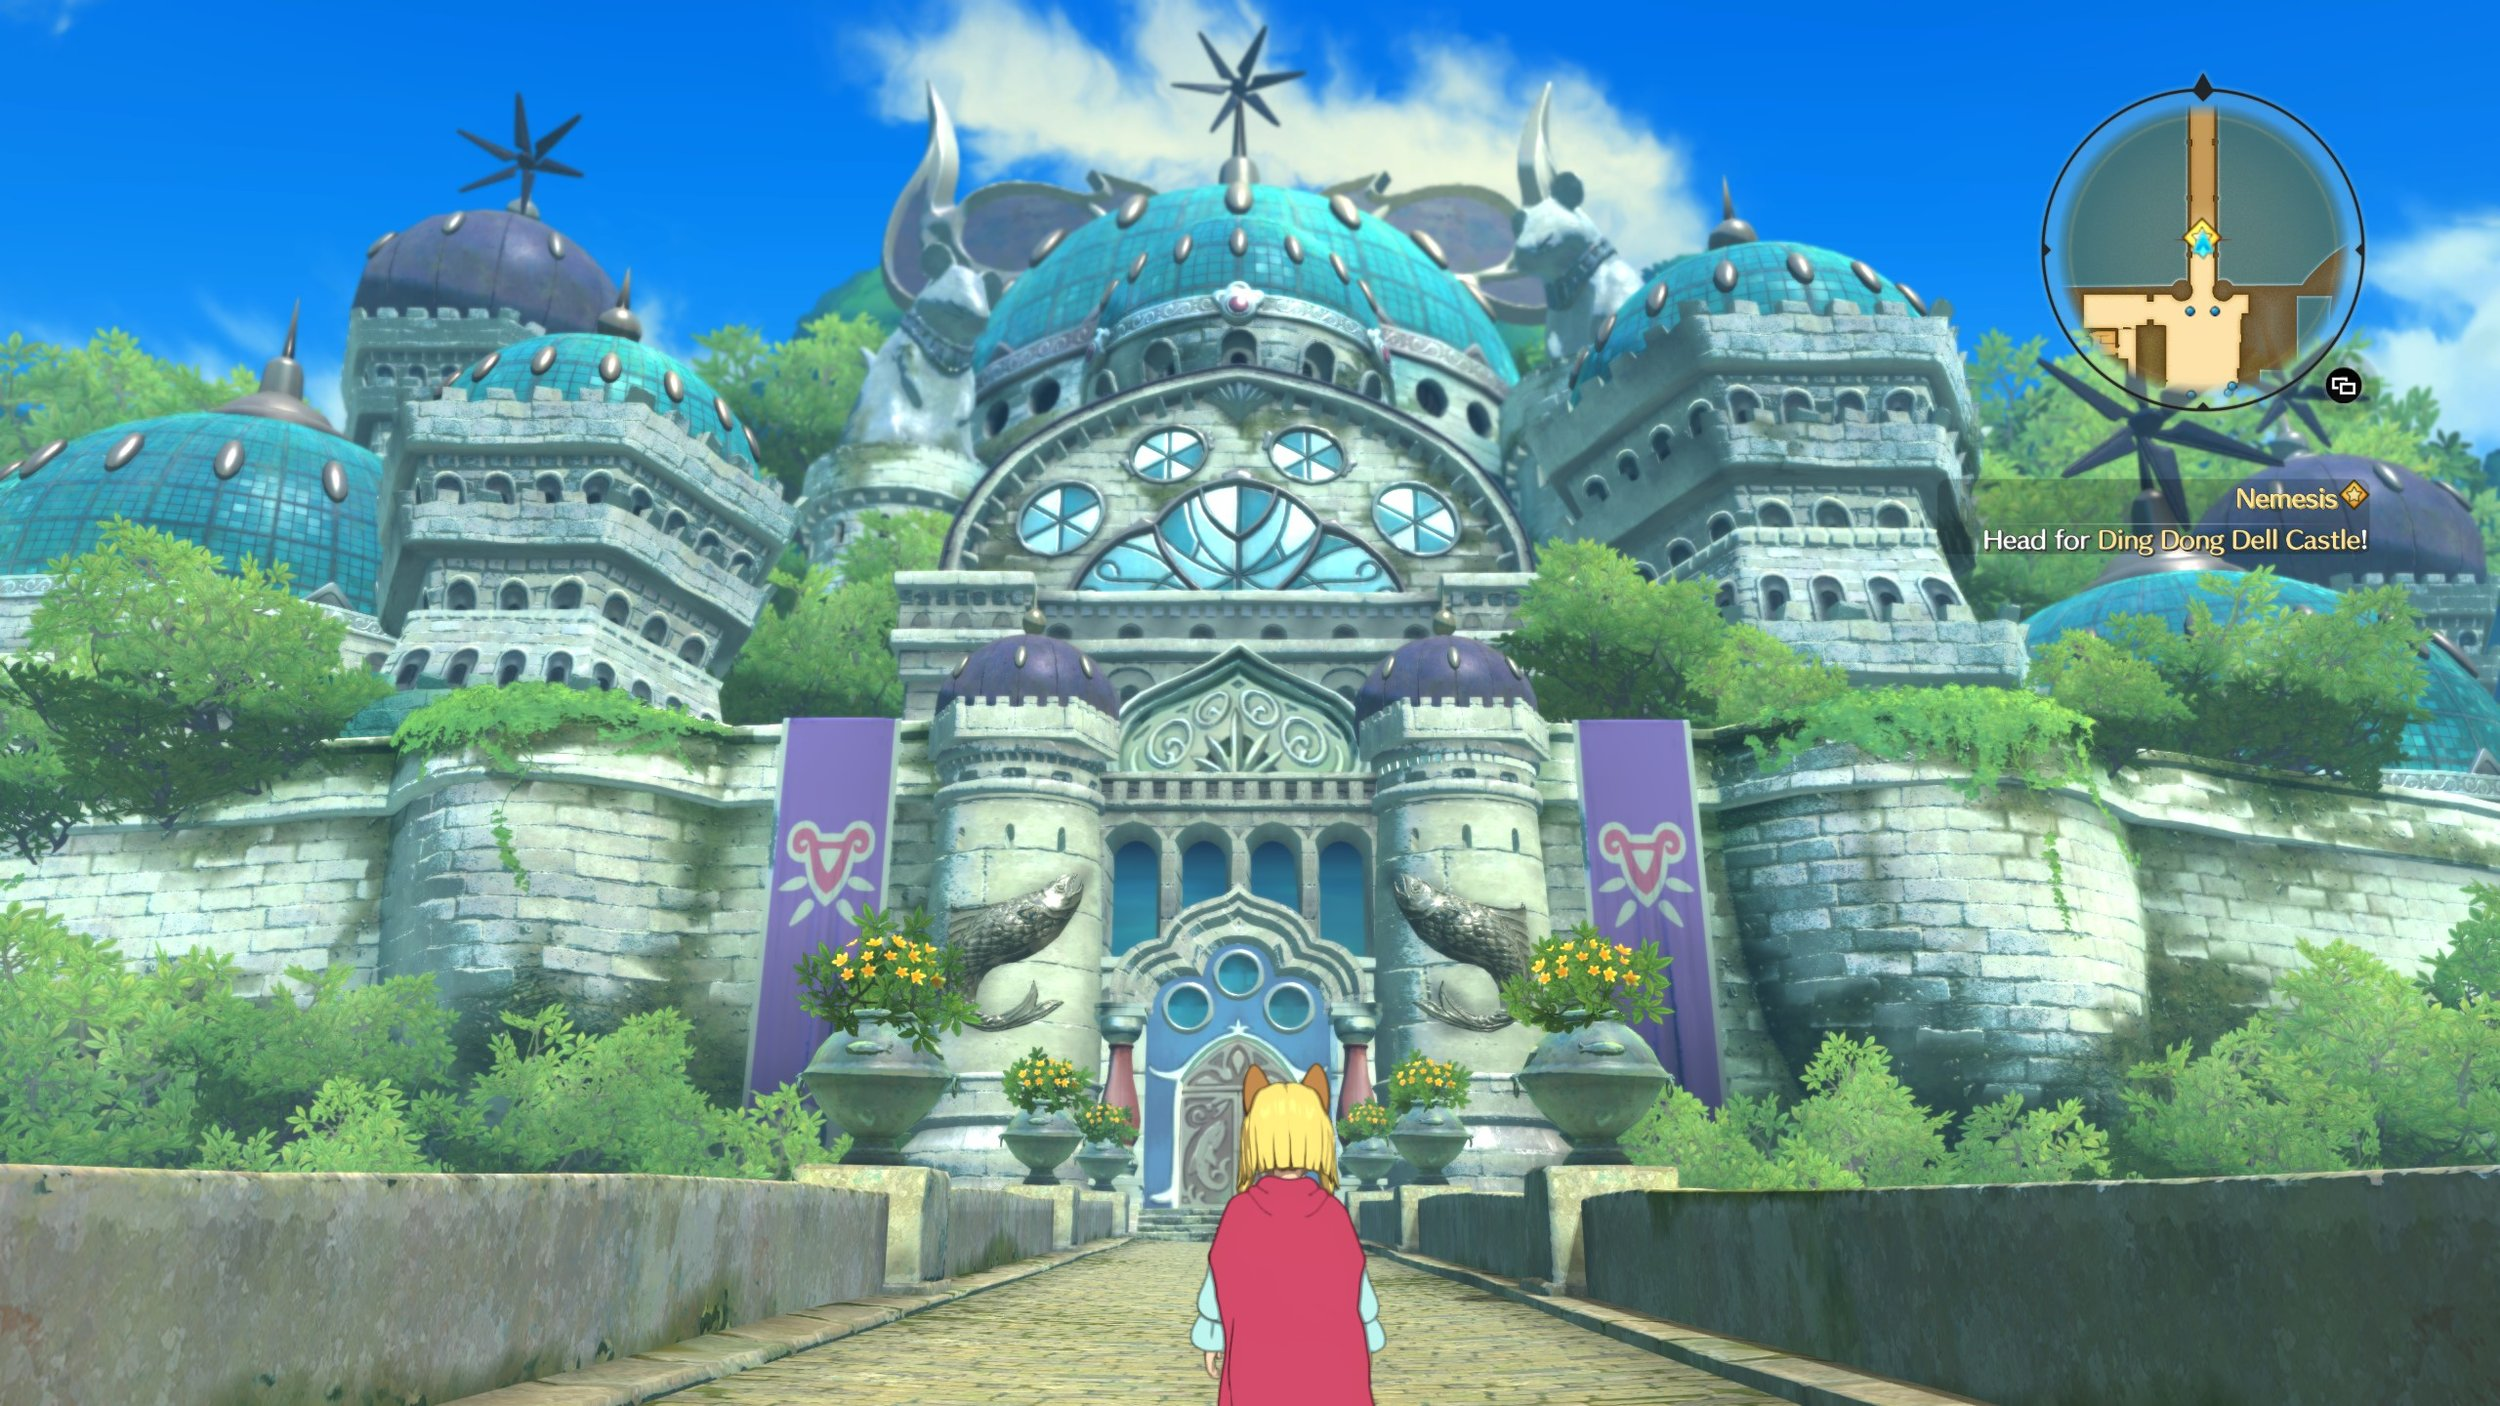 The world design is very good, I love the Ghibli inspired fantasy aesthetic.